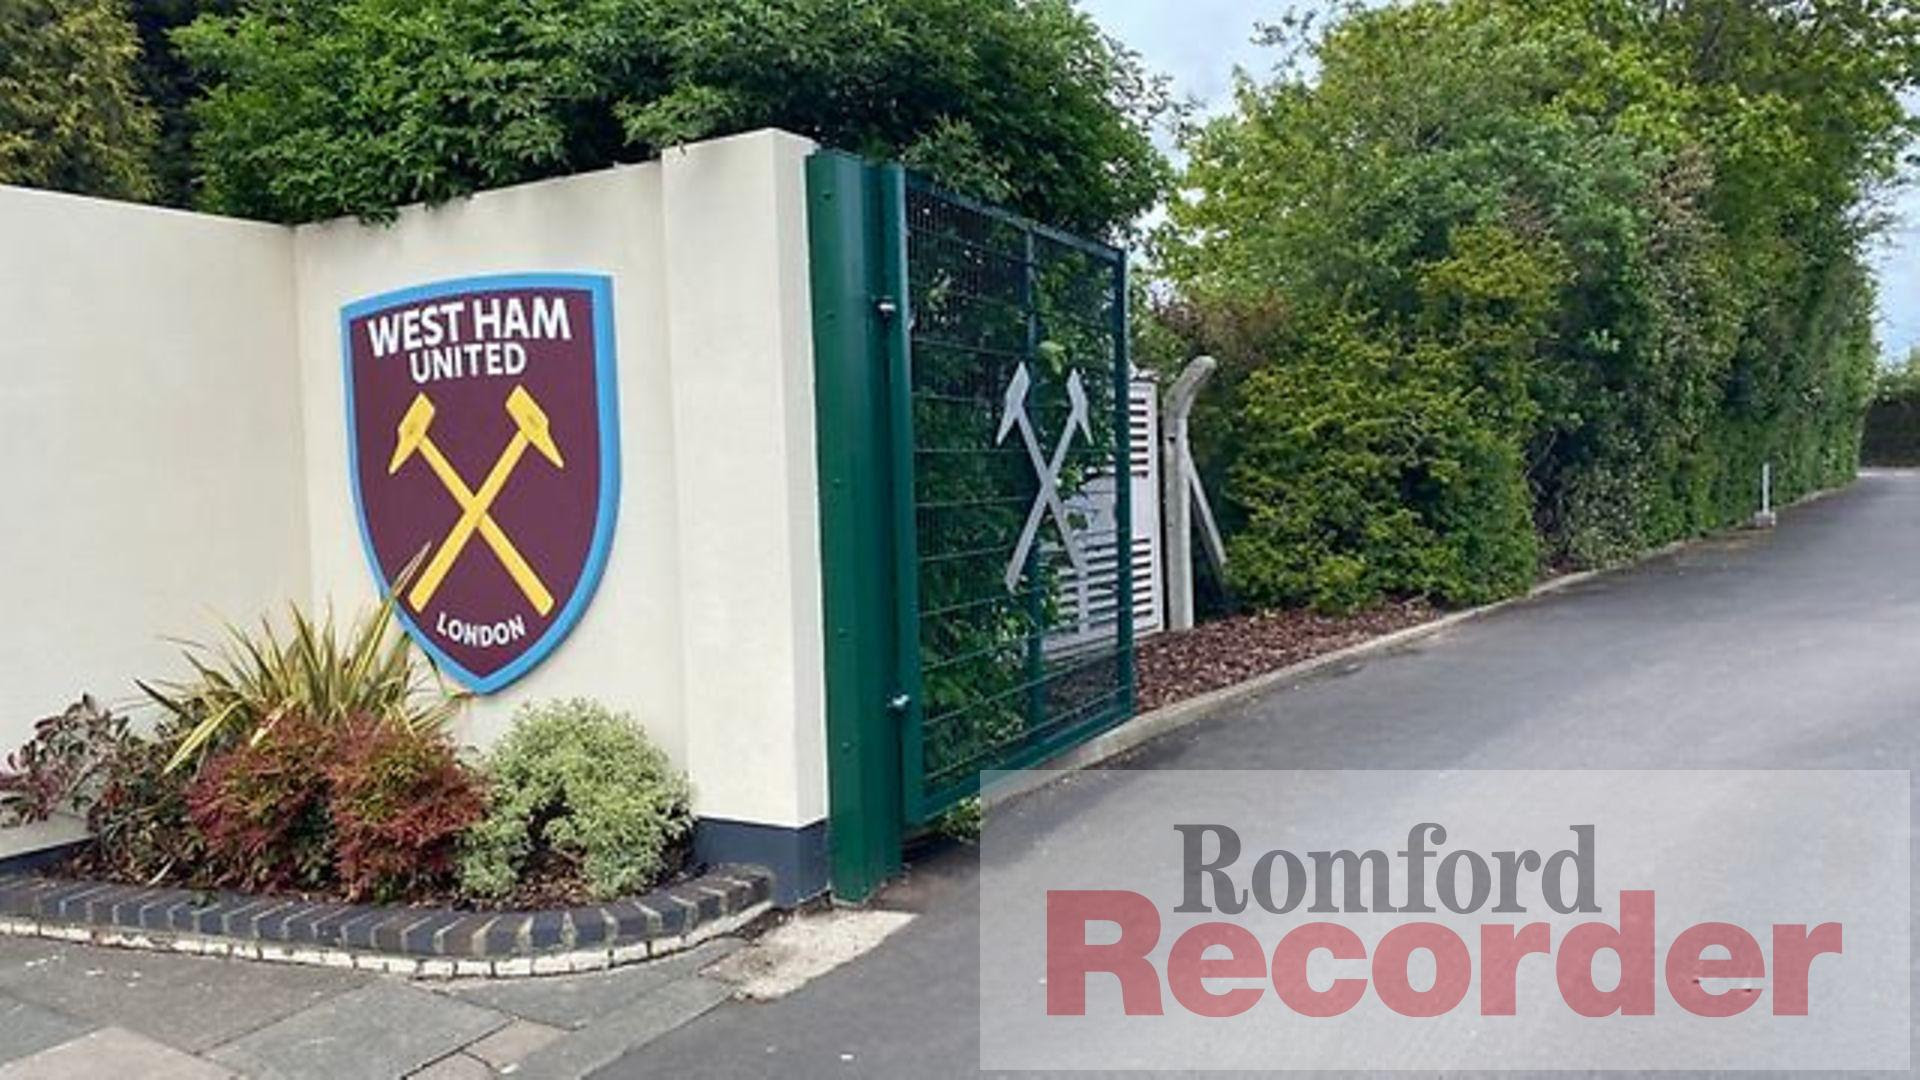 Plans approved to build new training facility at West Ham